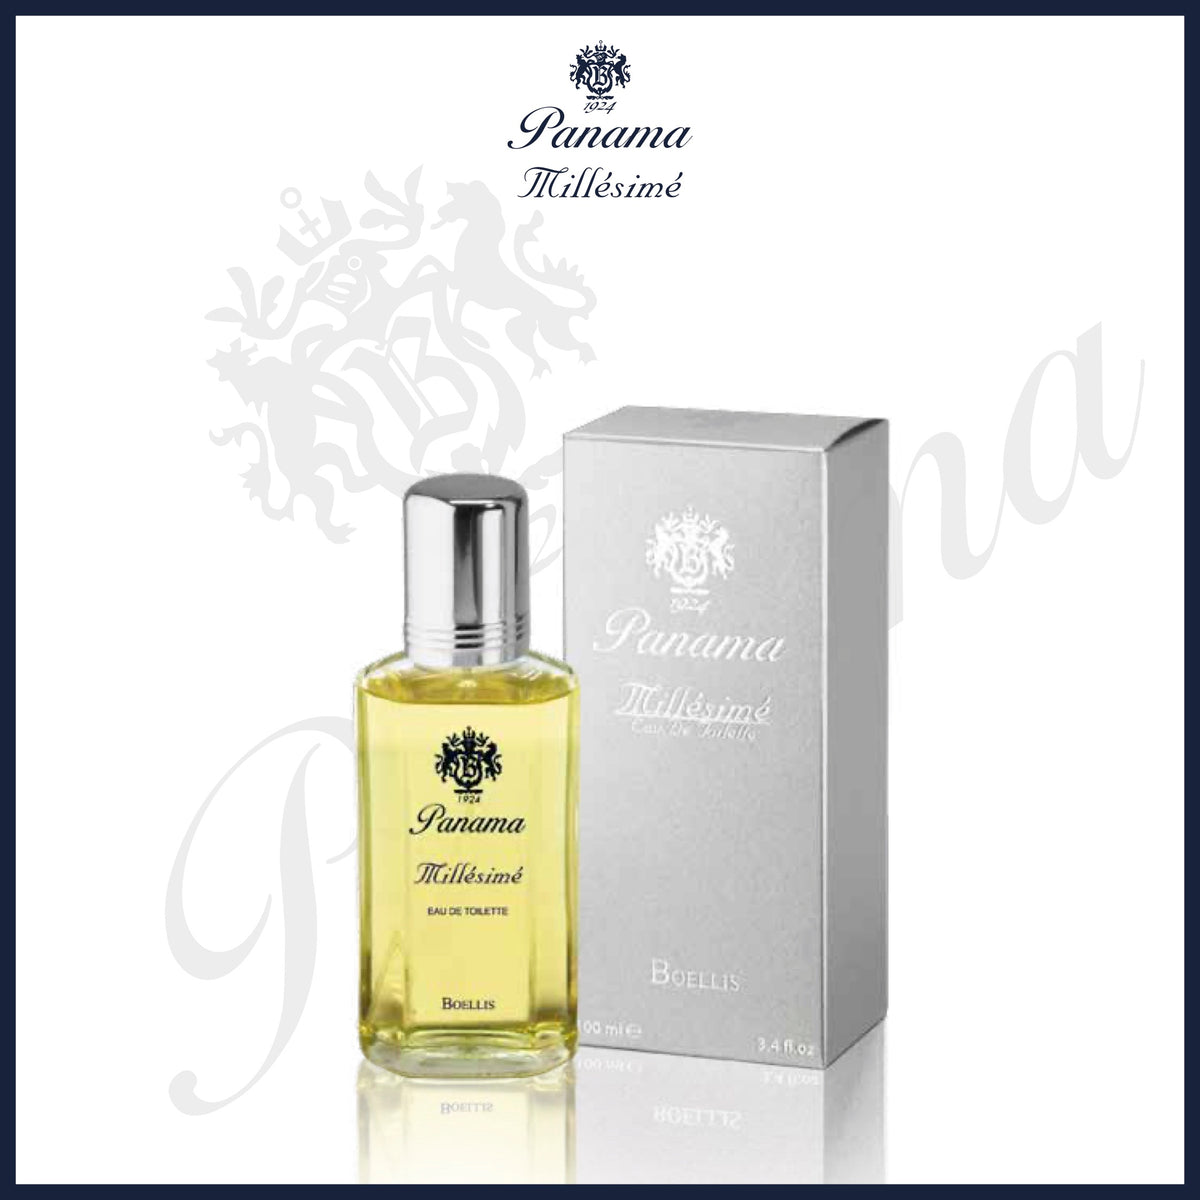 Panama 1924 - MILLESIMEE EDT  100 ml